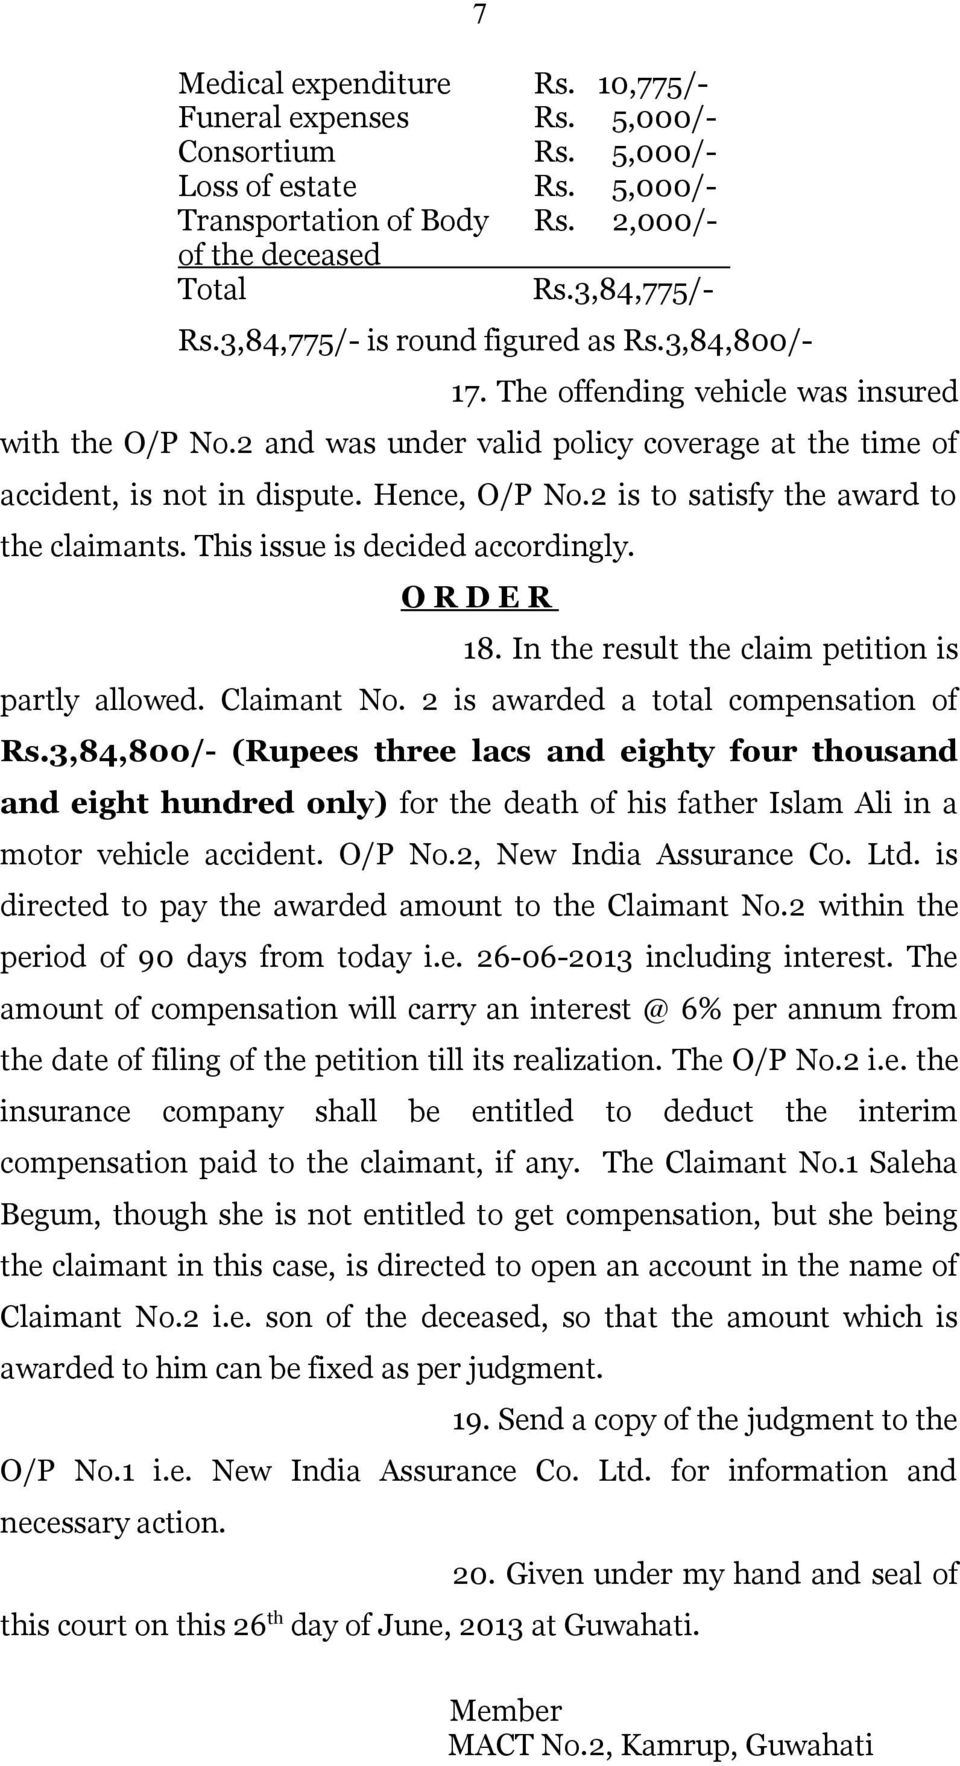 2 is to satisfy the award to the claimants. This issue is decided accordingly. O R D E R 18. In the result the claim petition is partly allowed. Claimant No. 2 is awarded a total compensation of Rs.